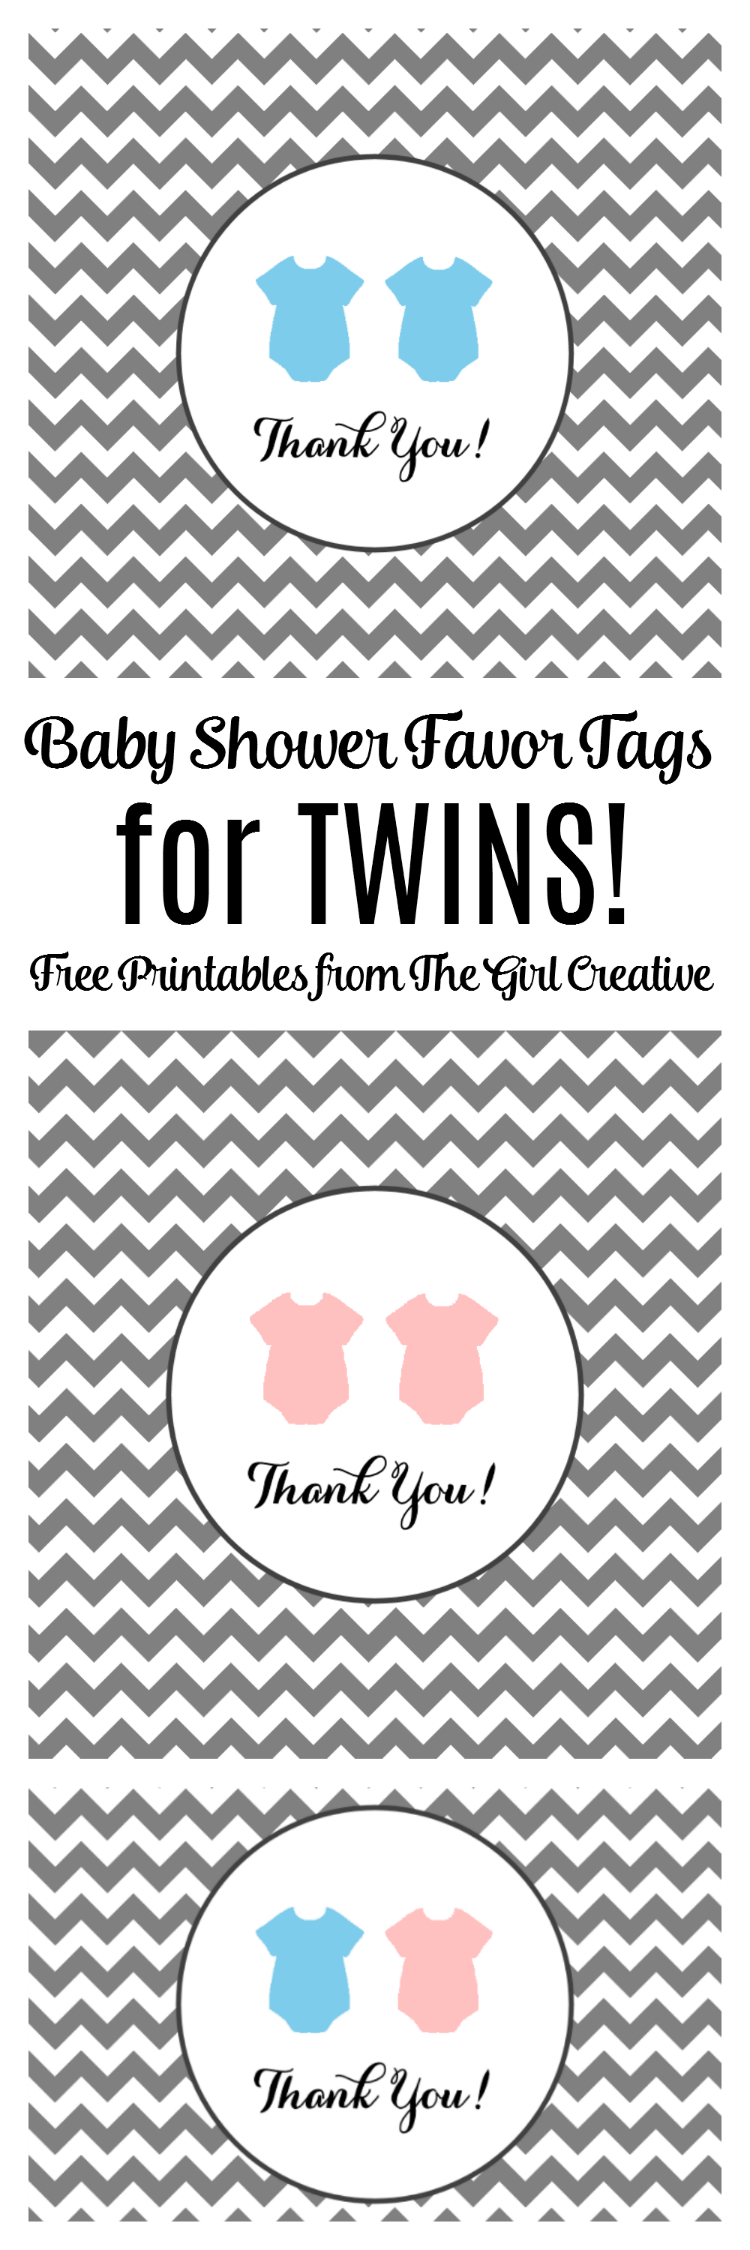 Baby Shower Favor Tags For Twins - The Girl Creative - Free Printable Baby Shower Favor Tags